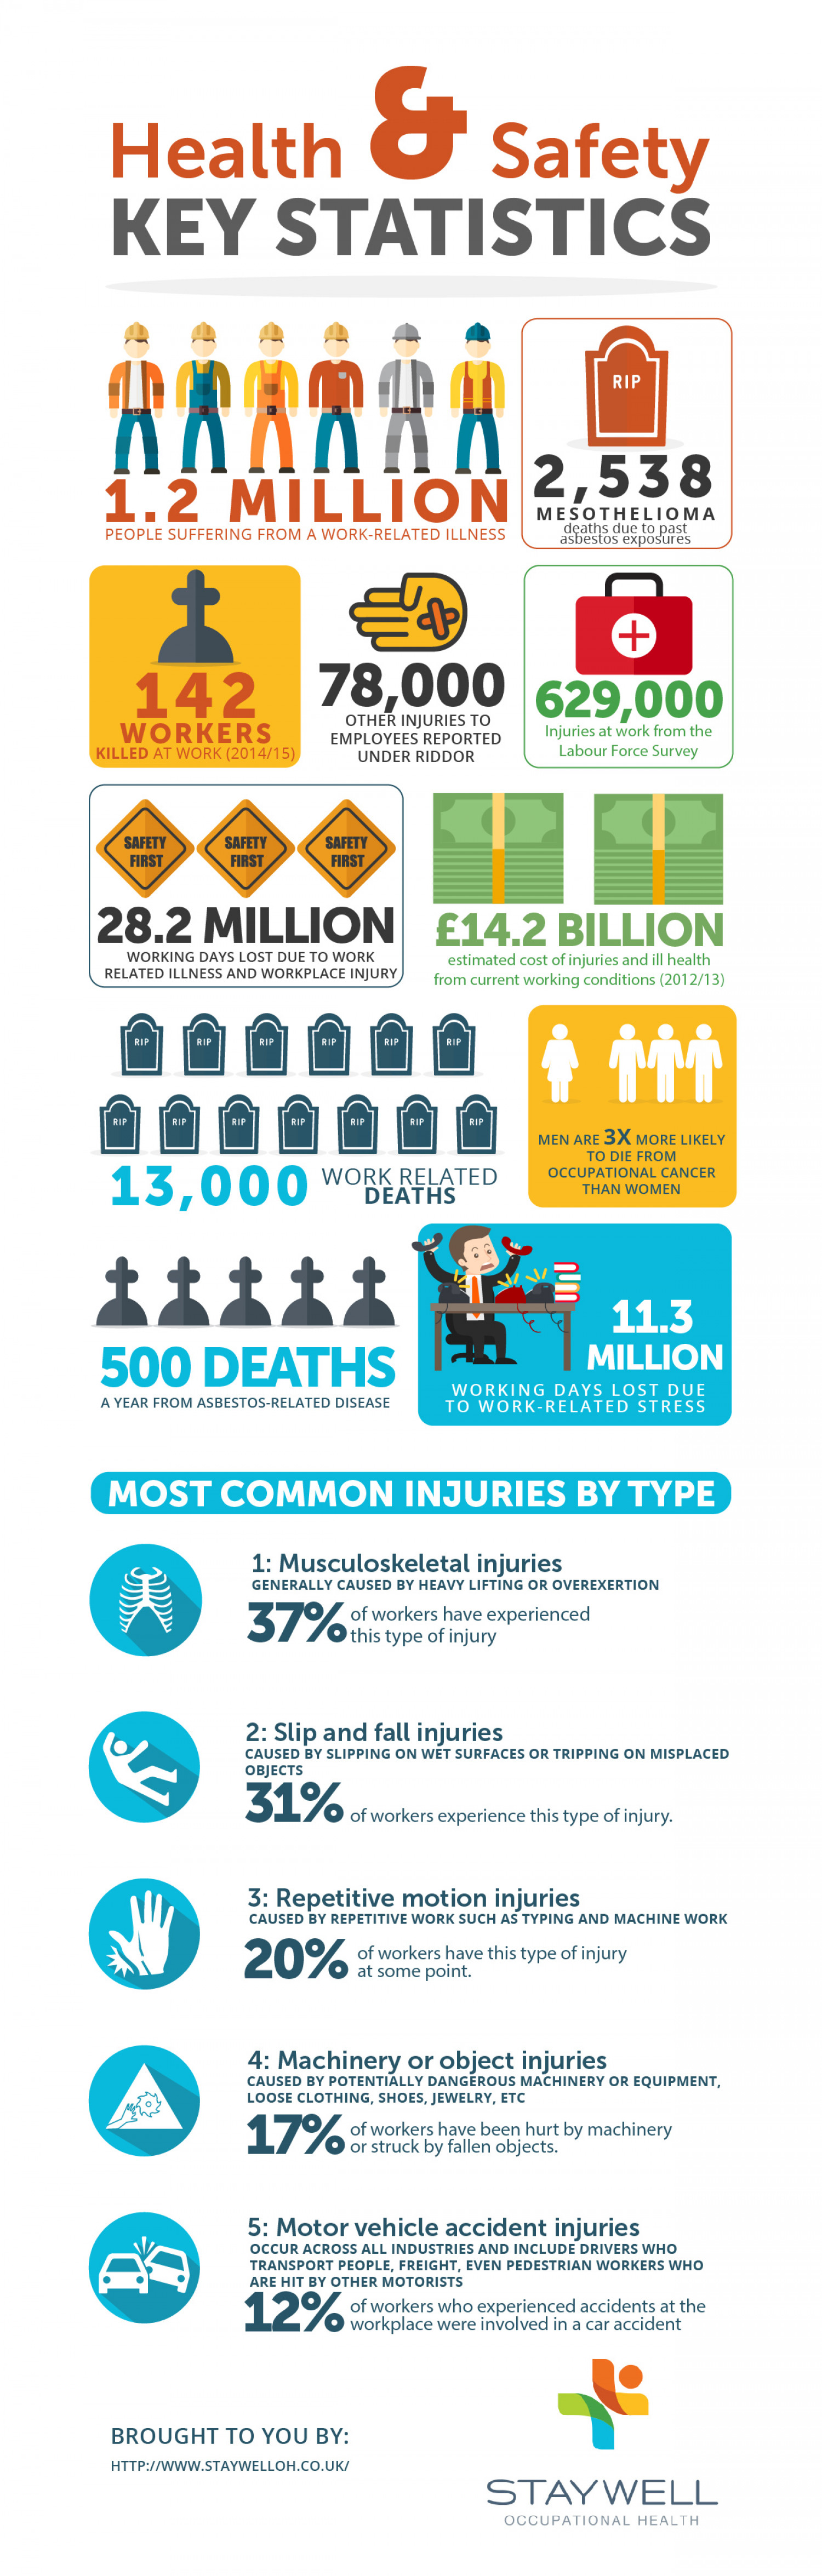 Health & Safety Key Statistics Infographic